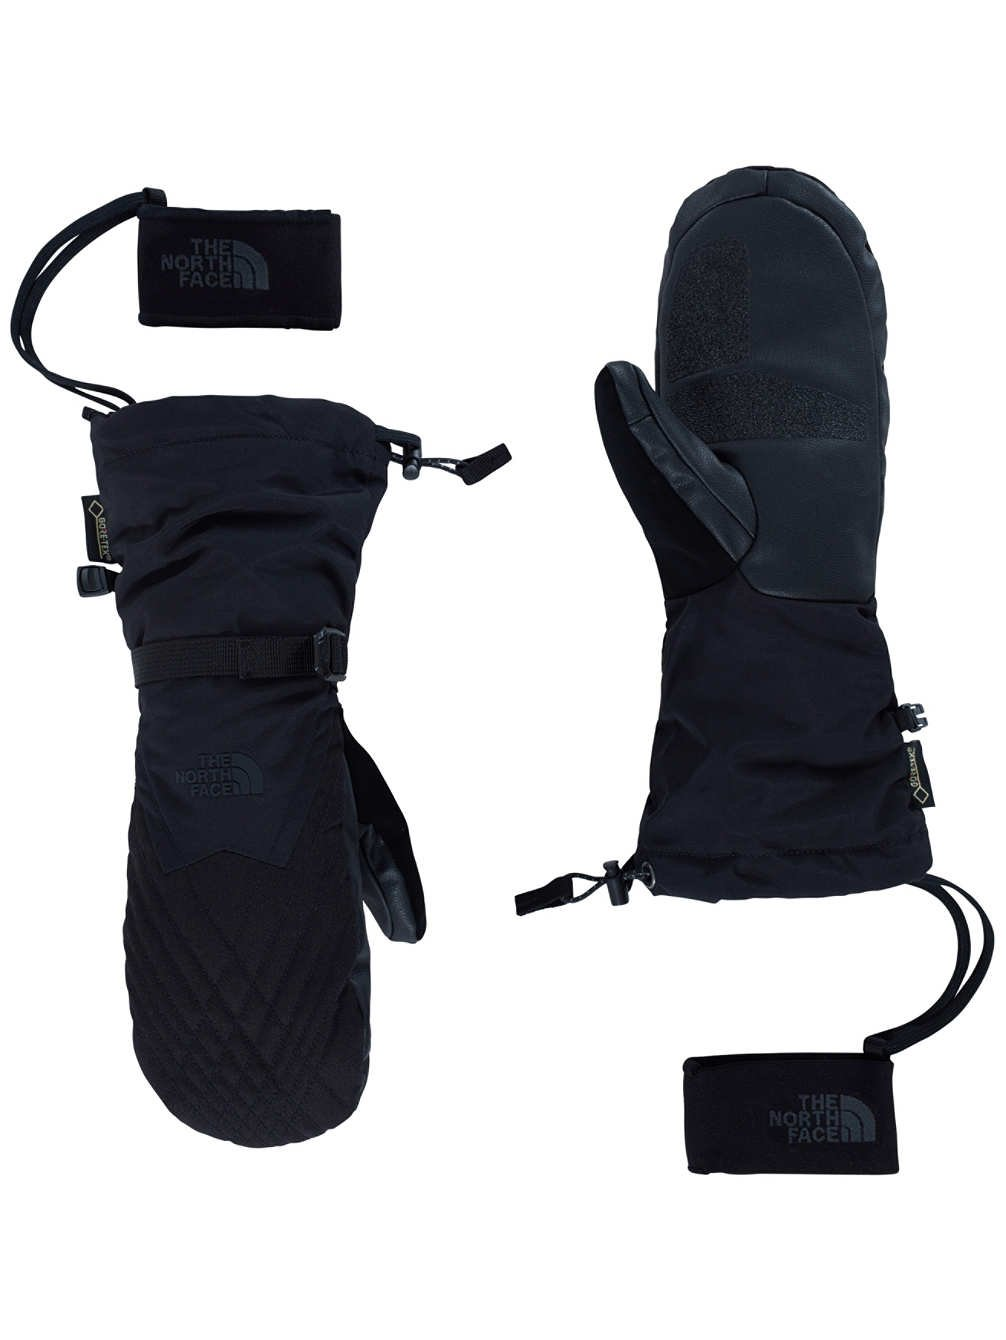 The North Face Snowboard Mitts - The North Face...